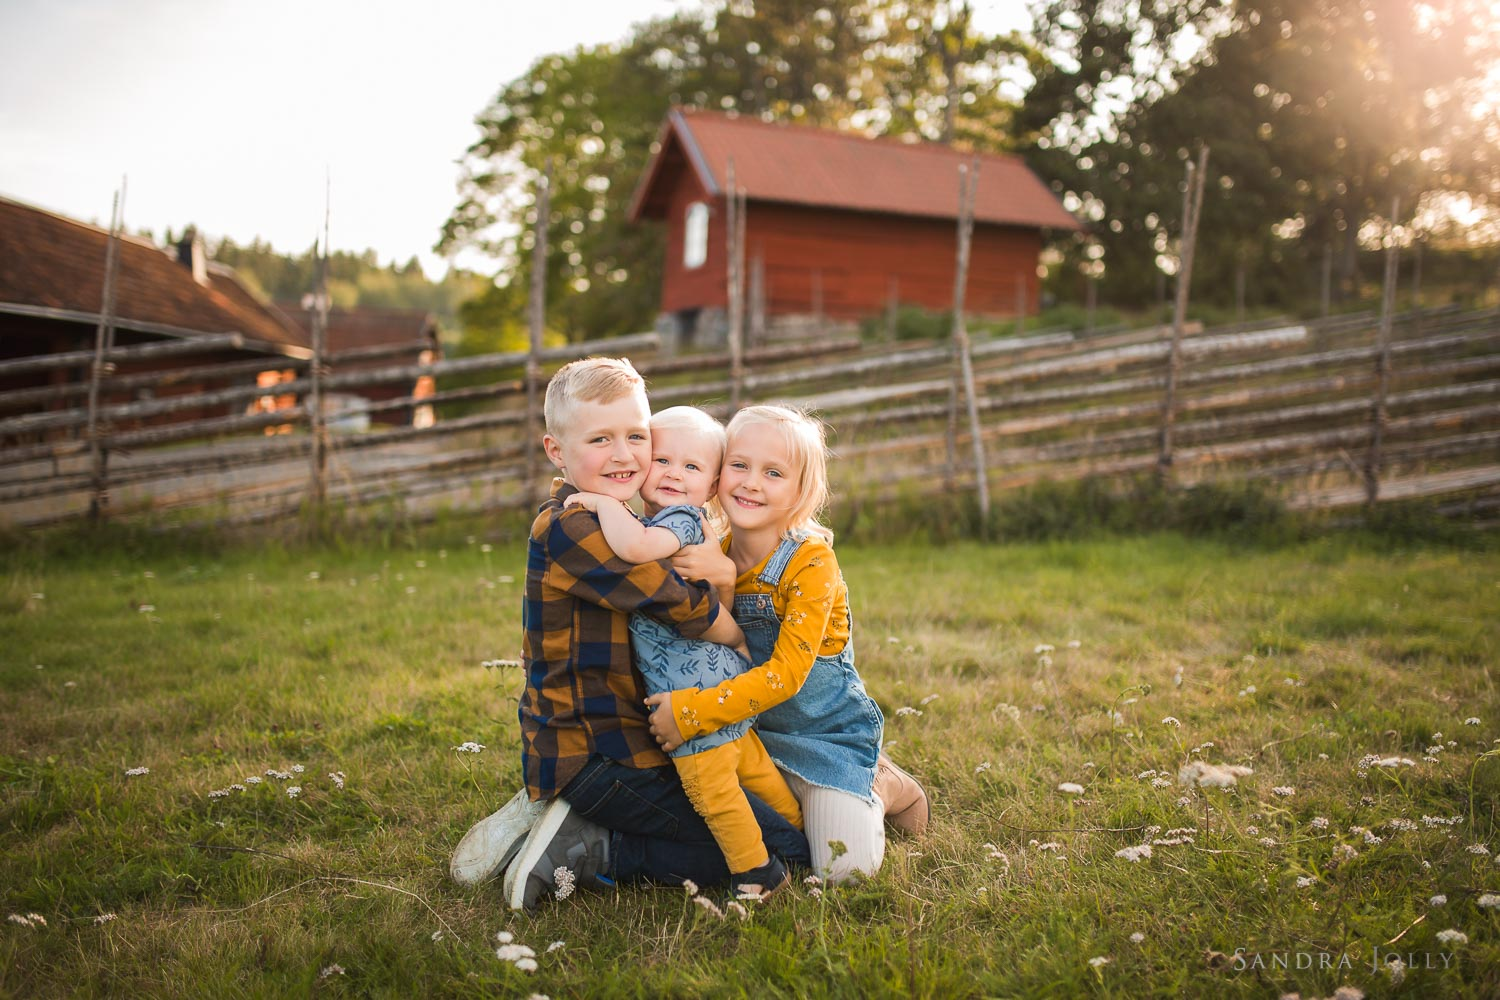 sibling-outdoor-summer-photo-session-stockholm-by-barnfotograf-sandra-jolly.jpg